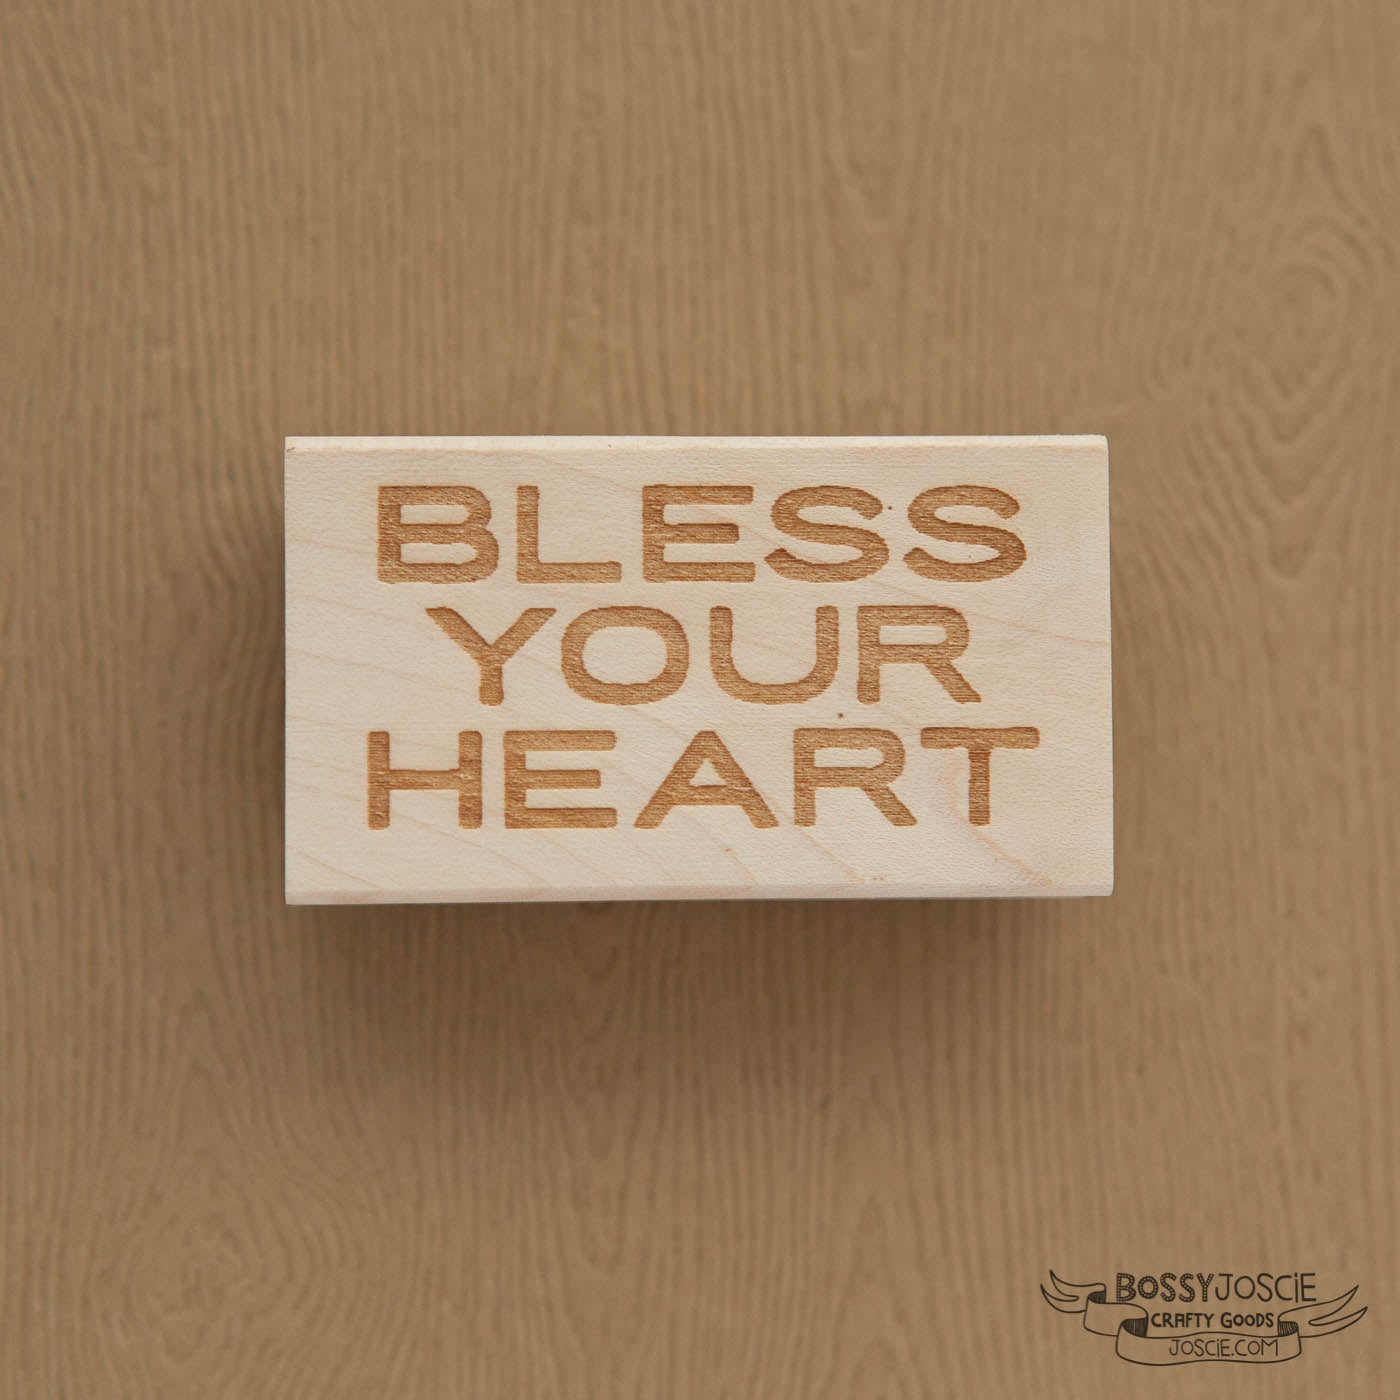 Image of Bless Your Heart Stamp